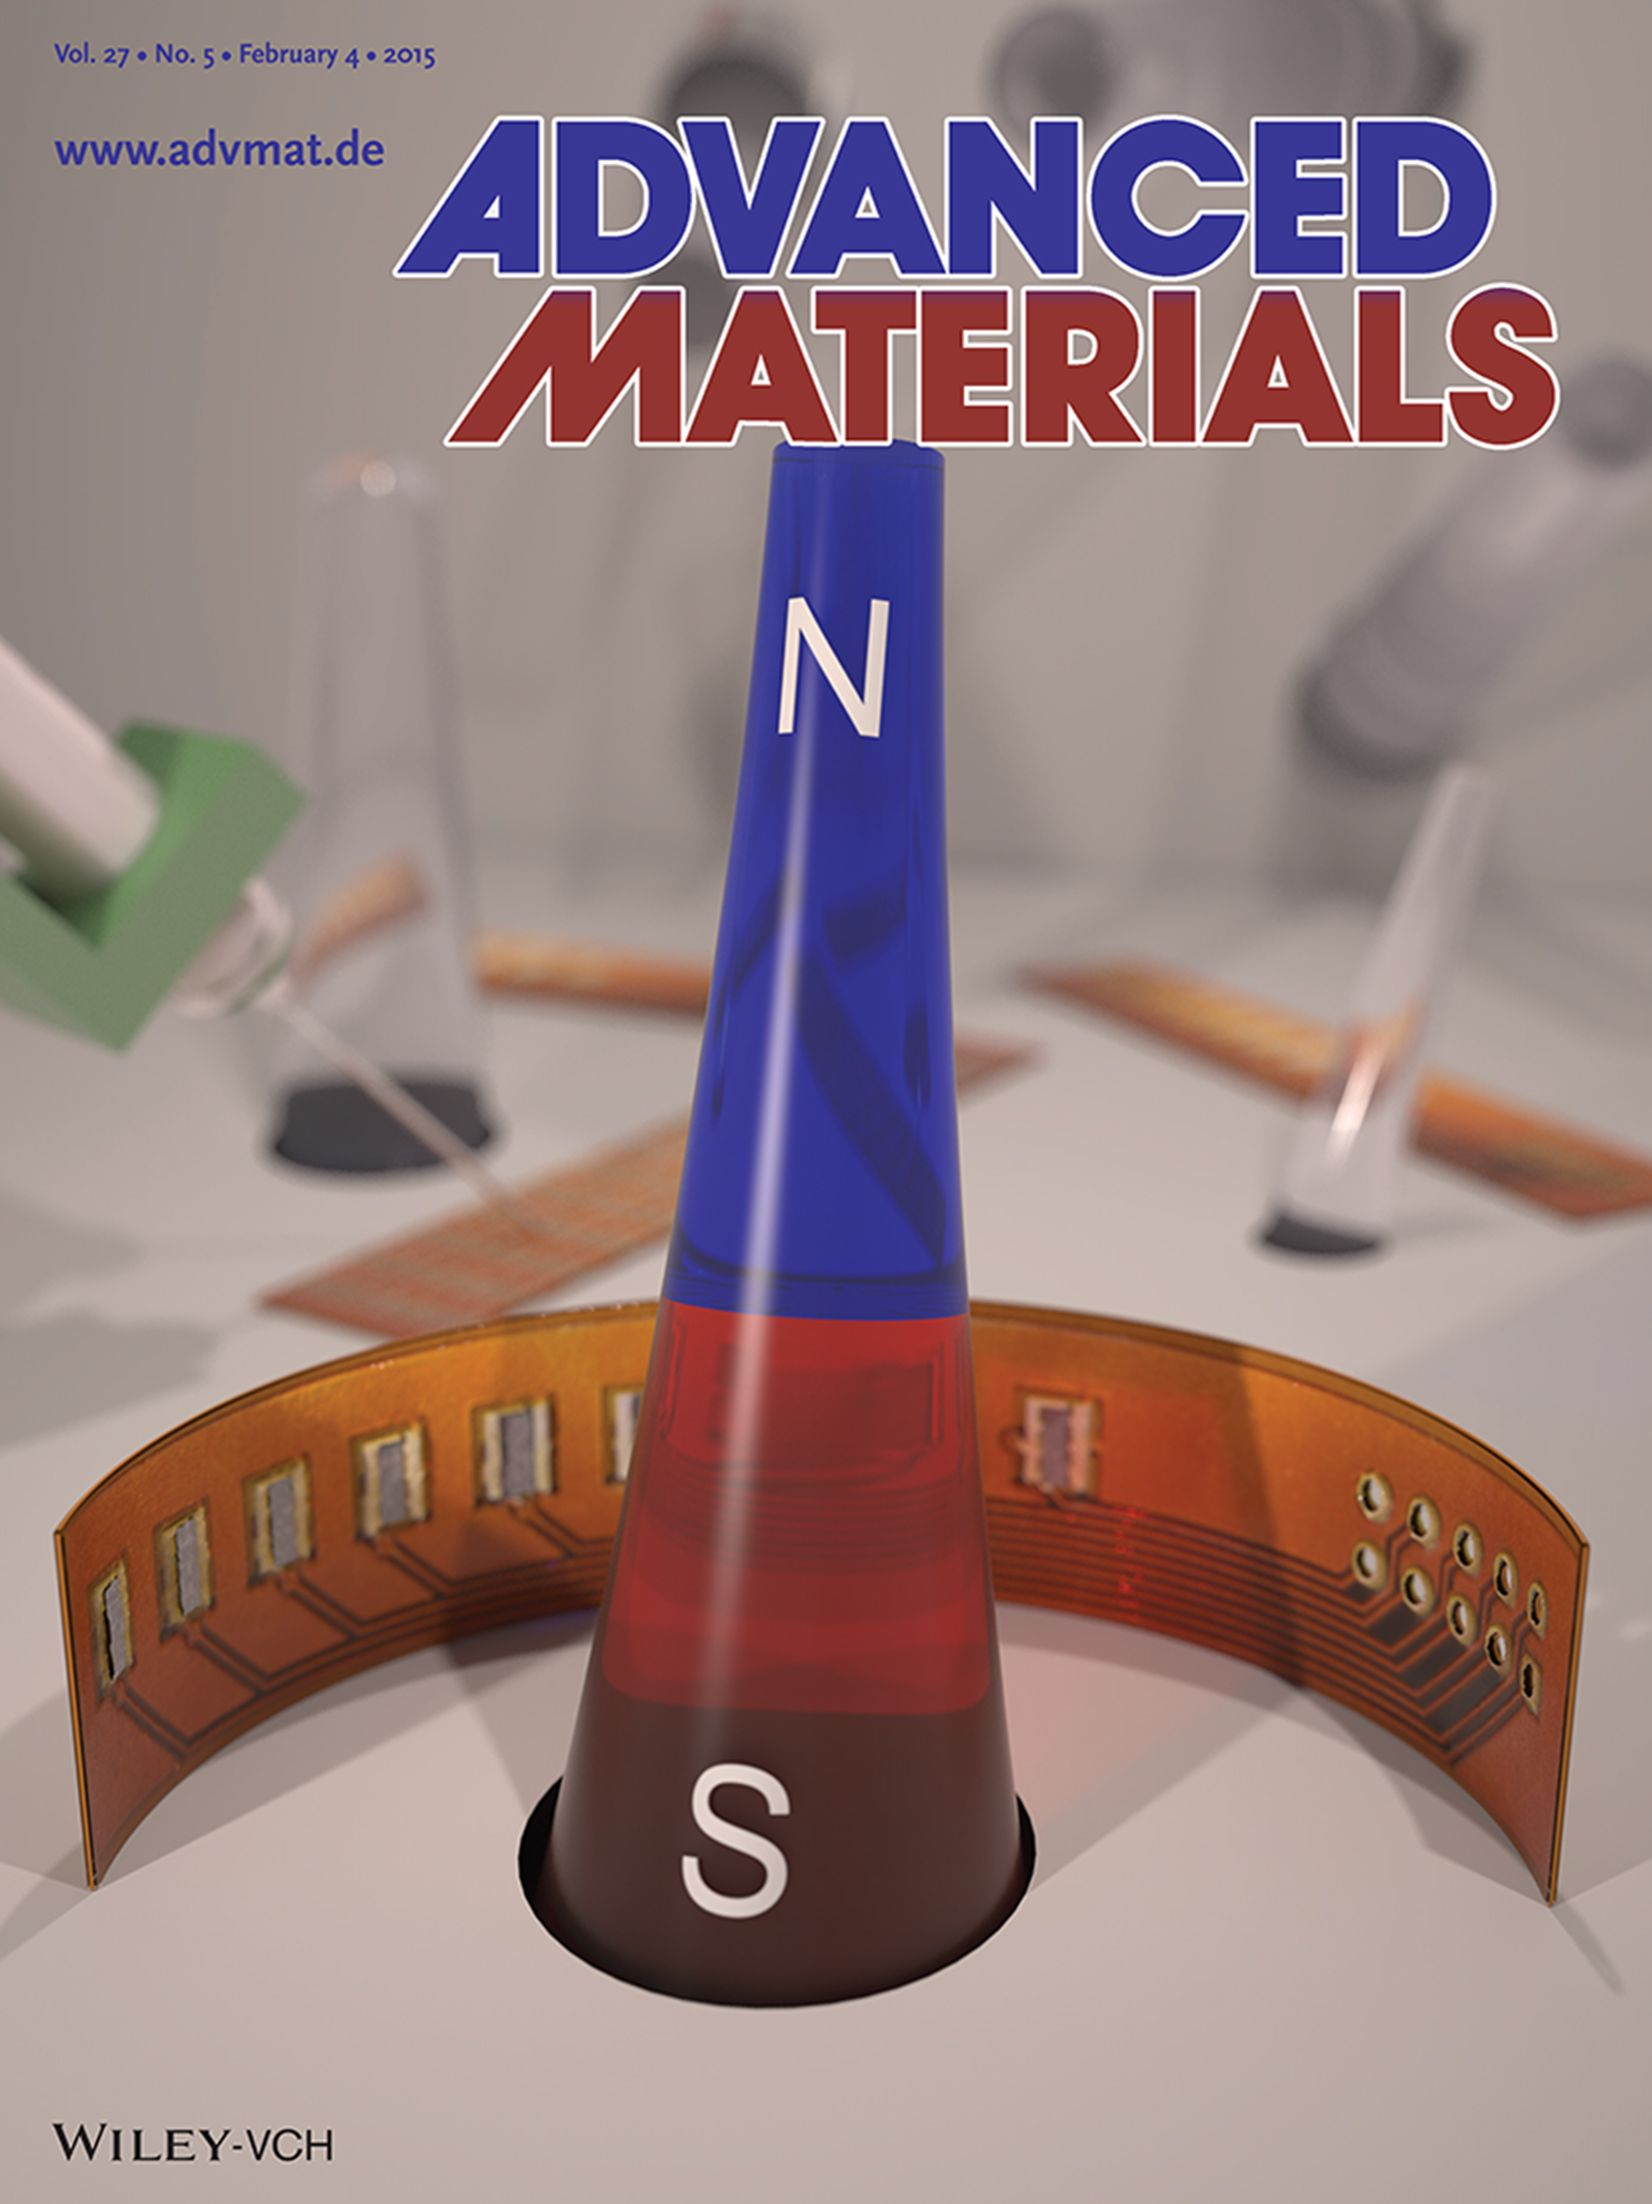 High-performance magnetic sensorics for printable and flexible electronics